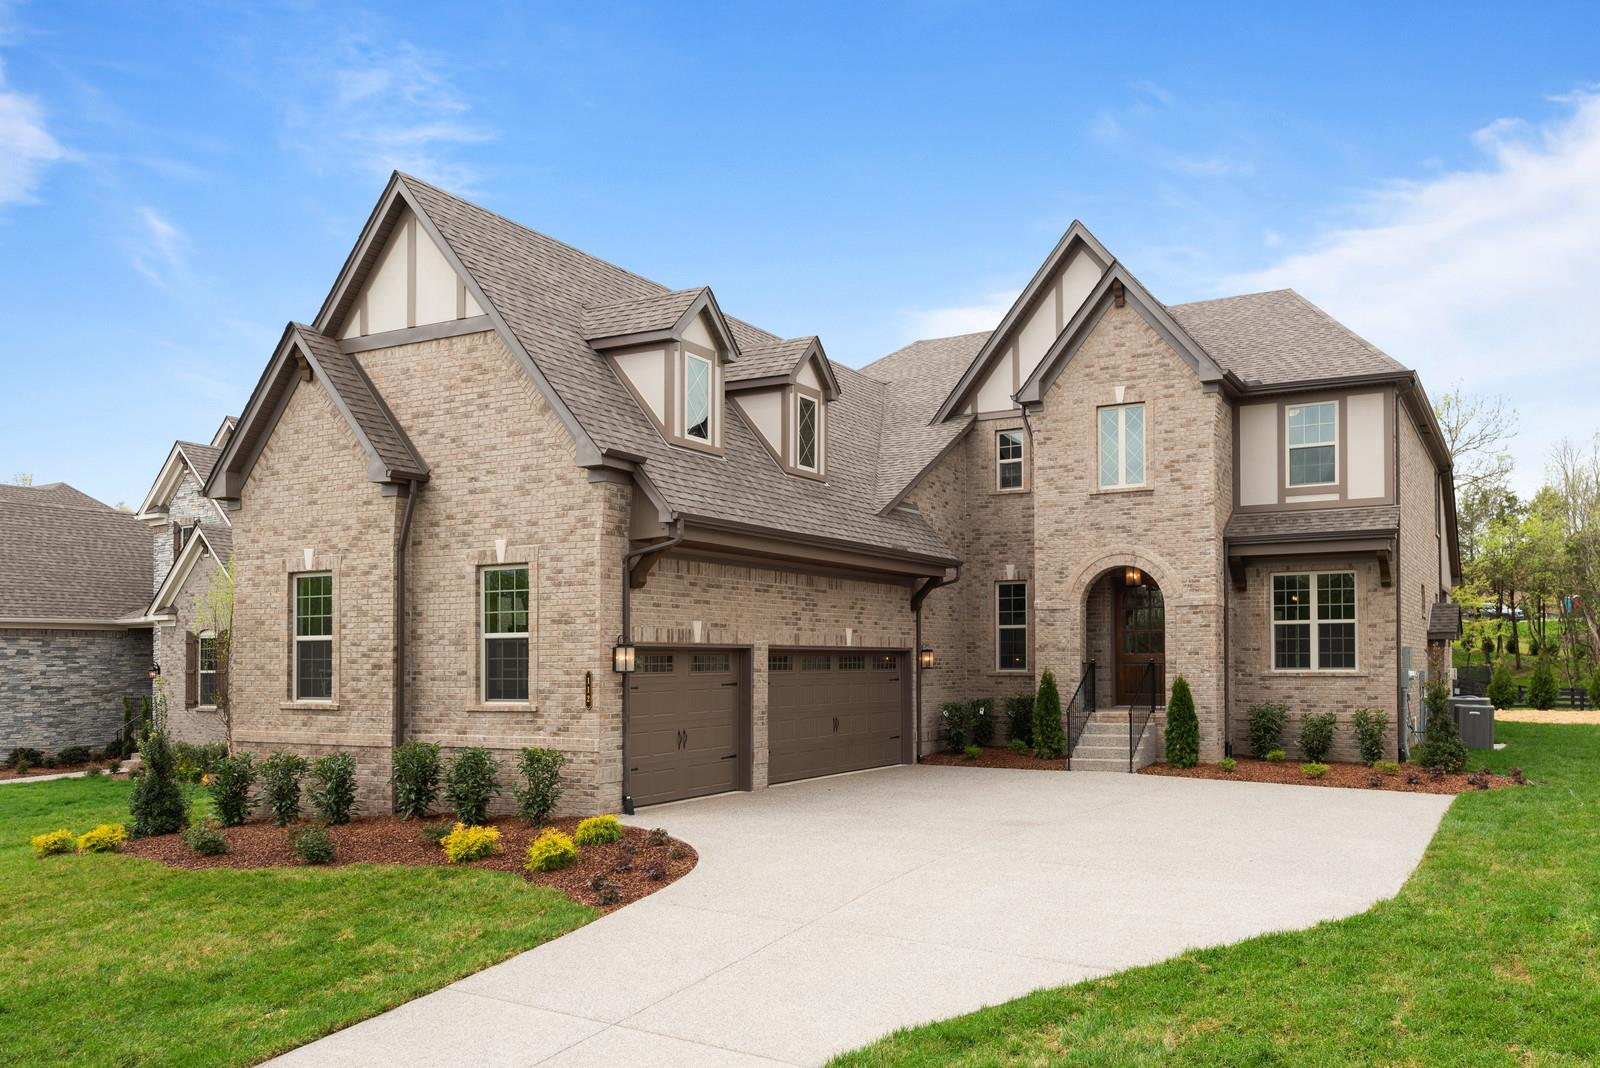 112 Asher Downs Circle #3, Nolensville, Tennessee